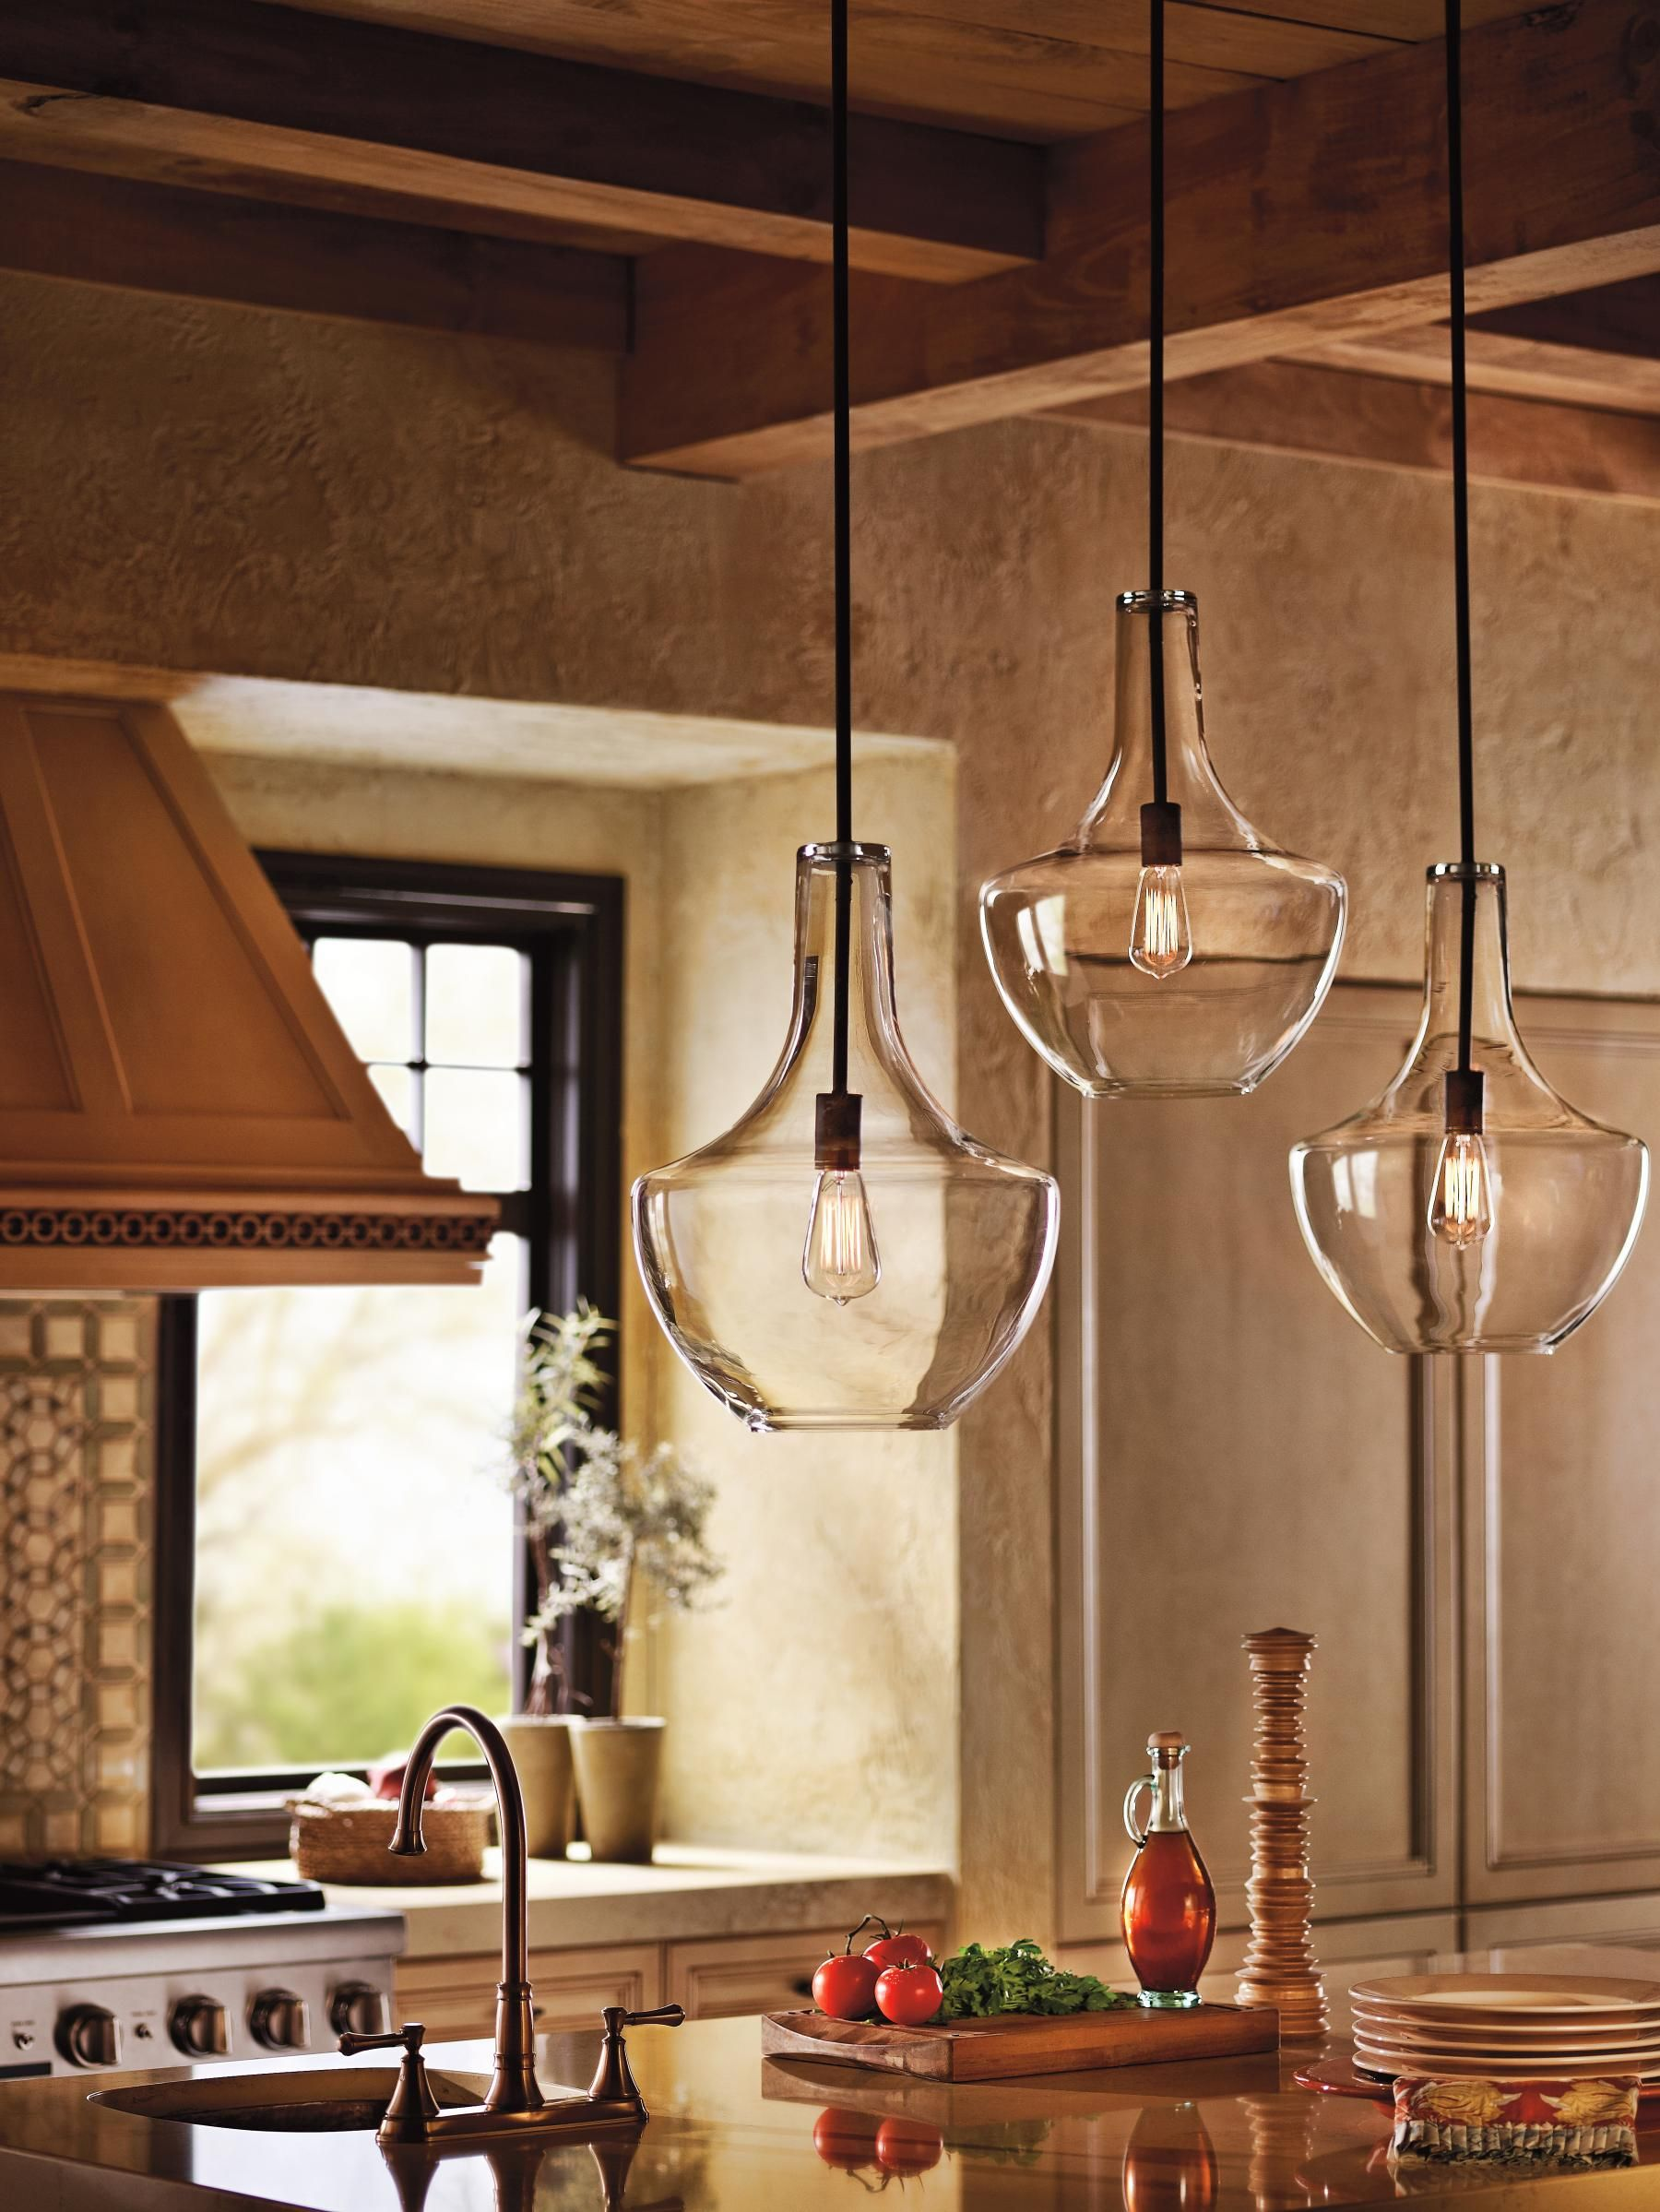 Everly Ceiling Pendant from Kichler Lighting over kitchen